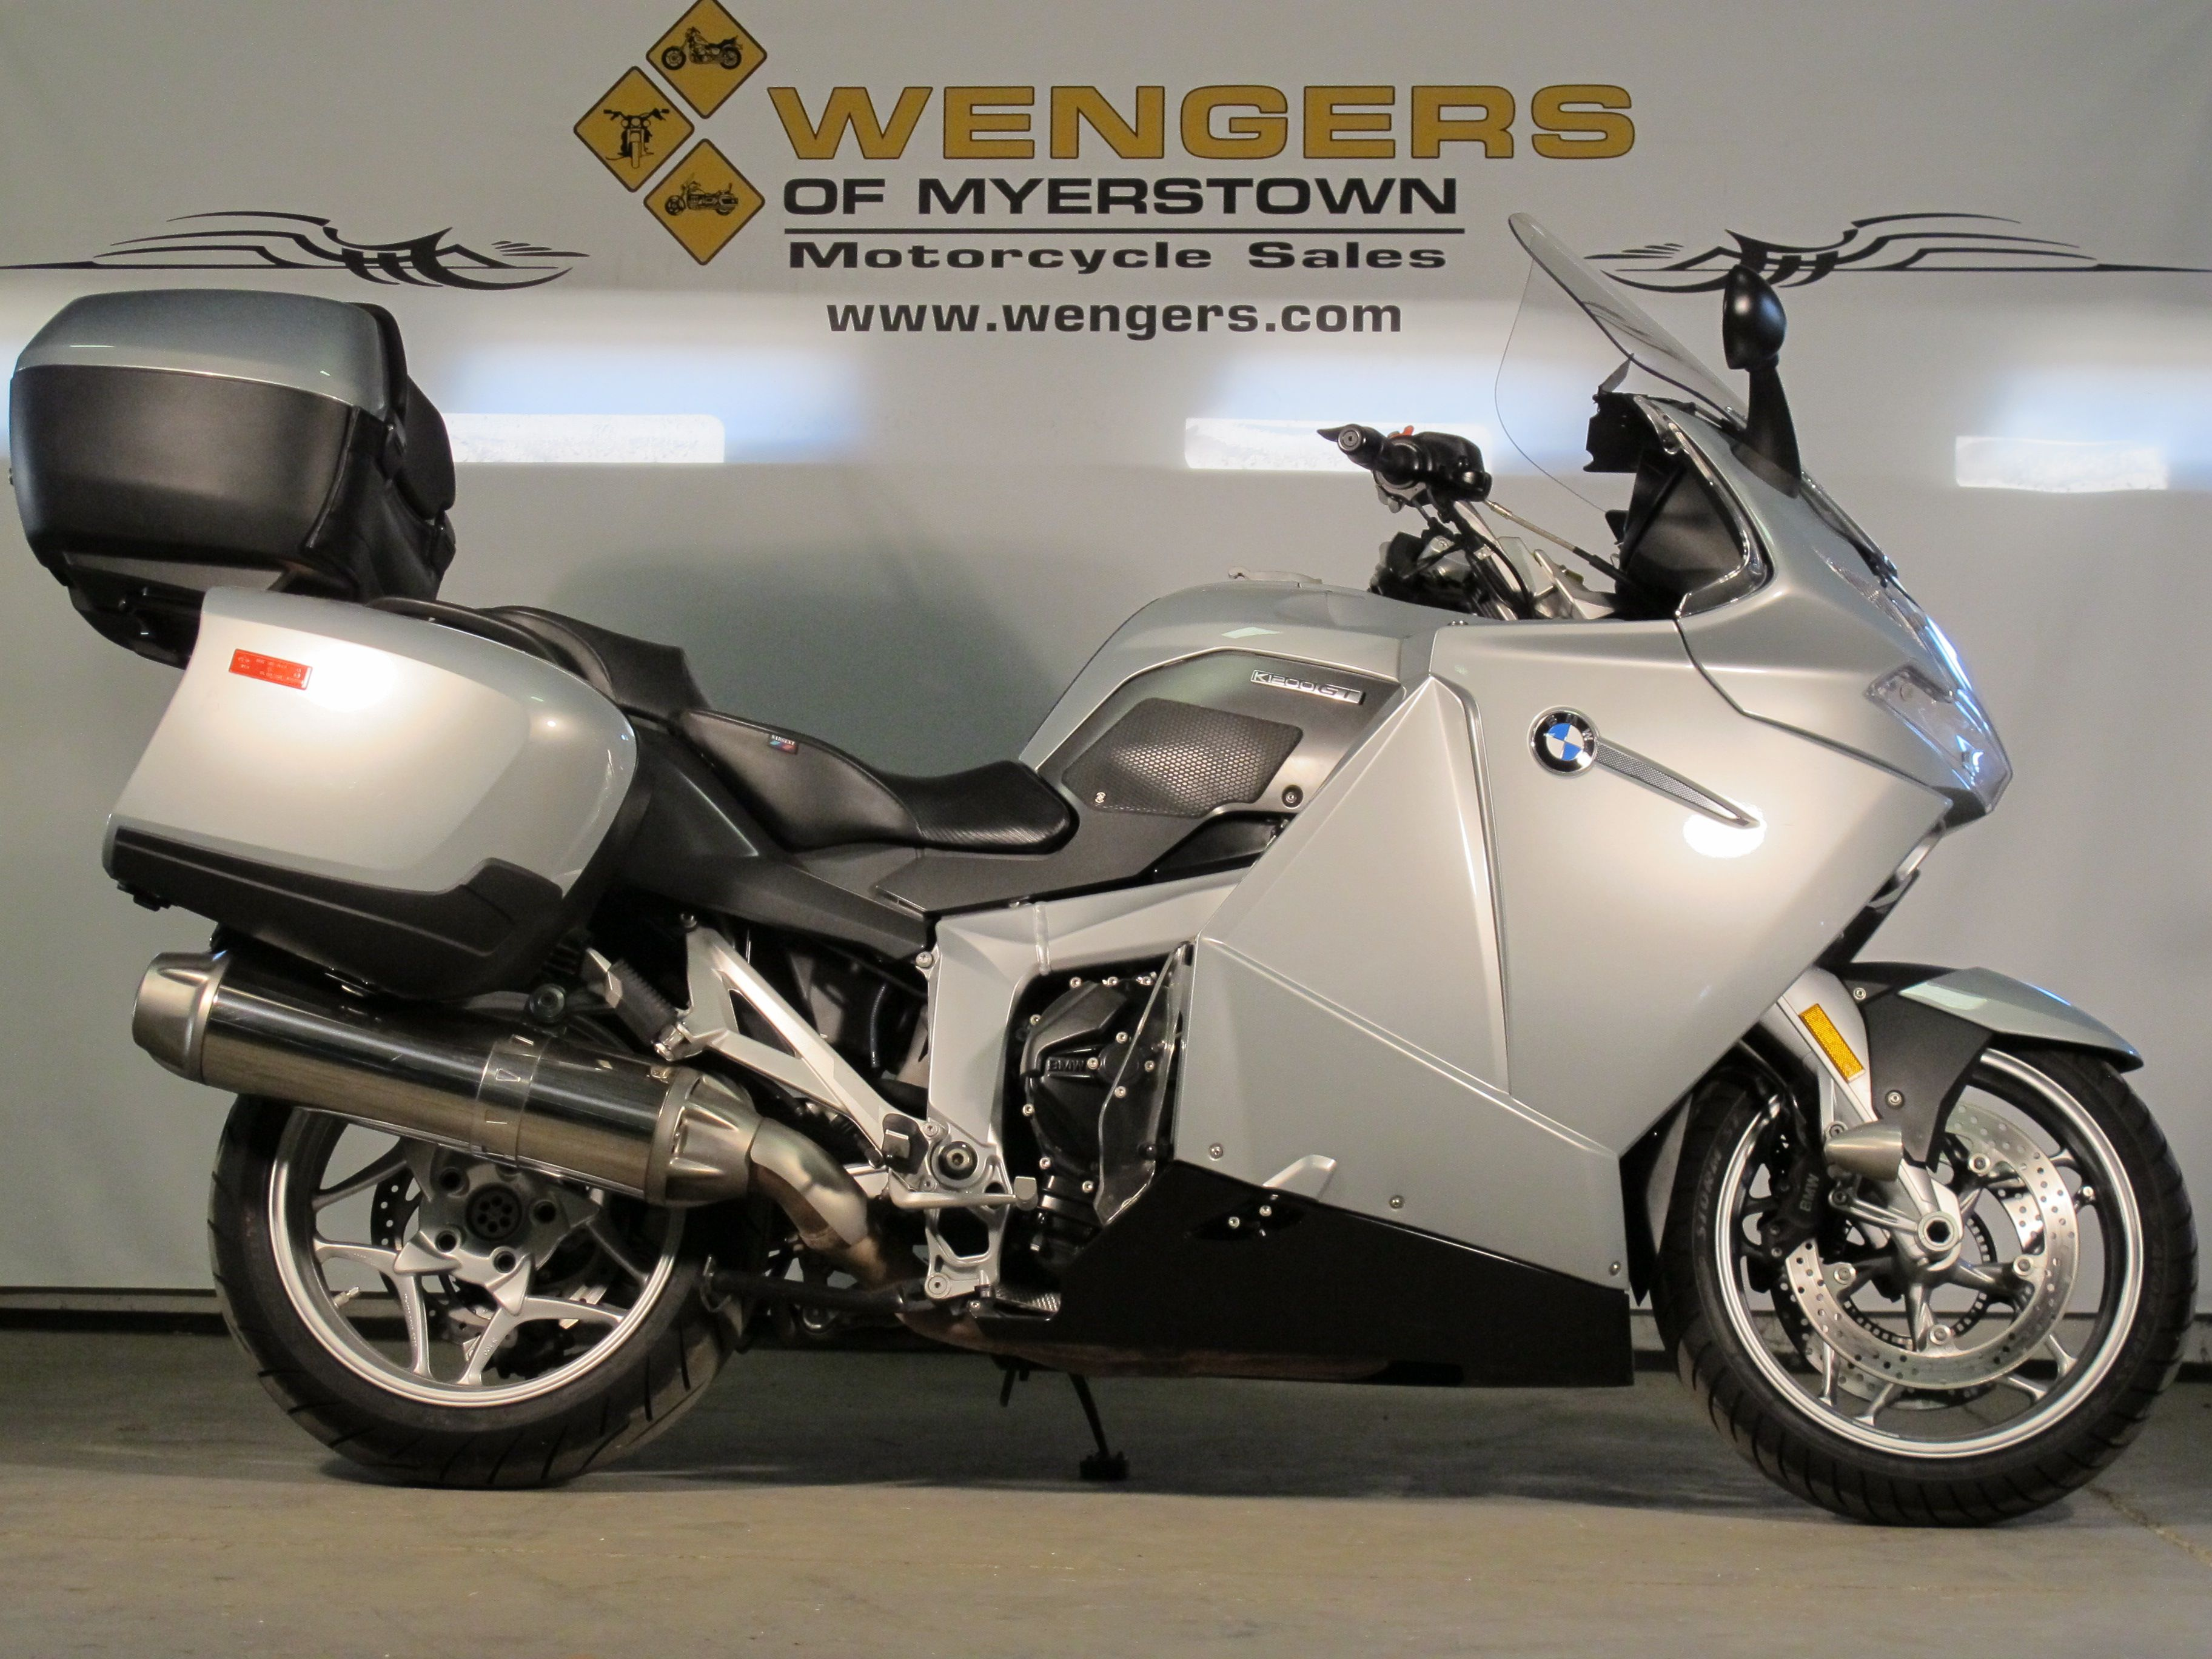 Wengers Of Myerstown >> BMW K1200GT Motorcycles for sale at Wengers of Myerstown ...